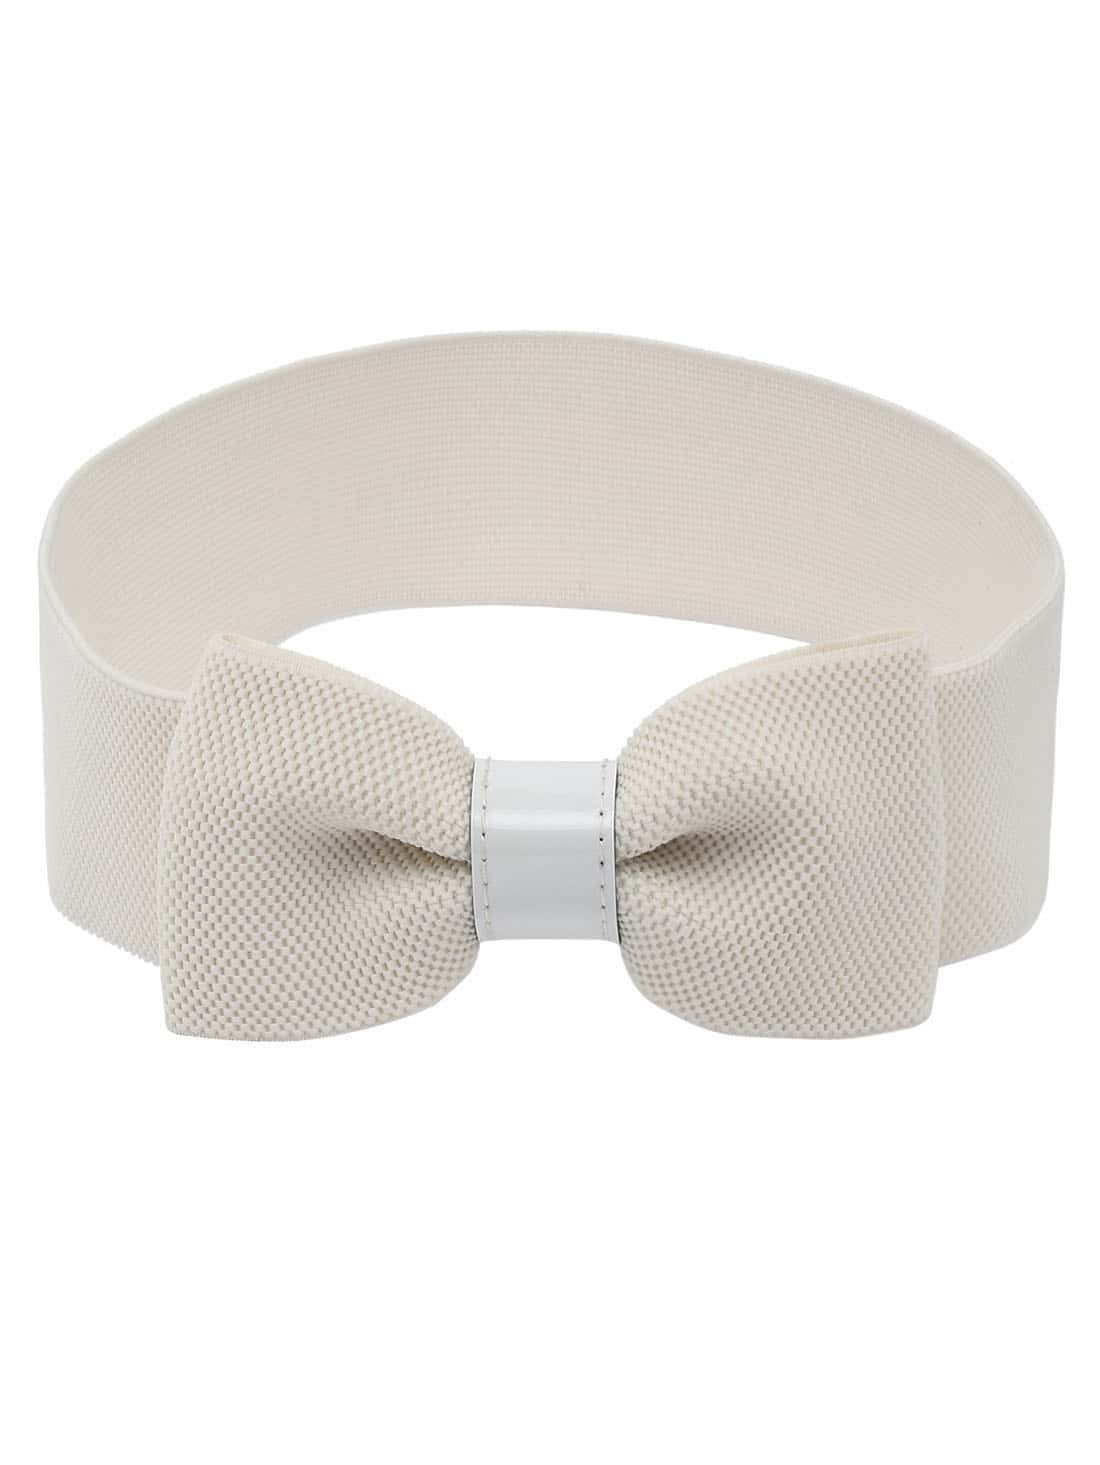 bow front white wide elastic belt